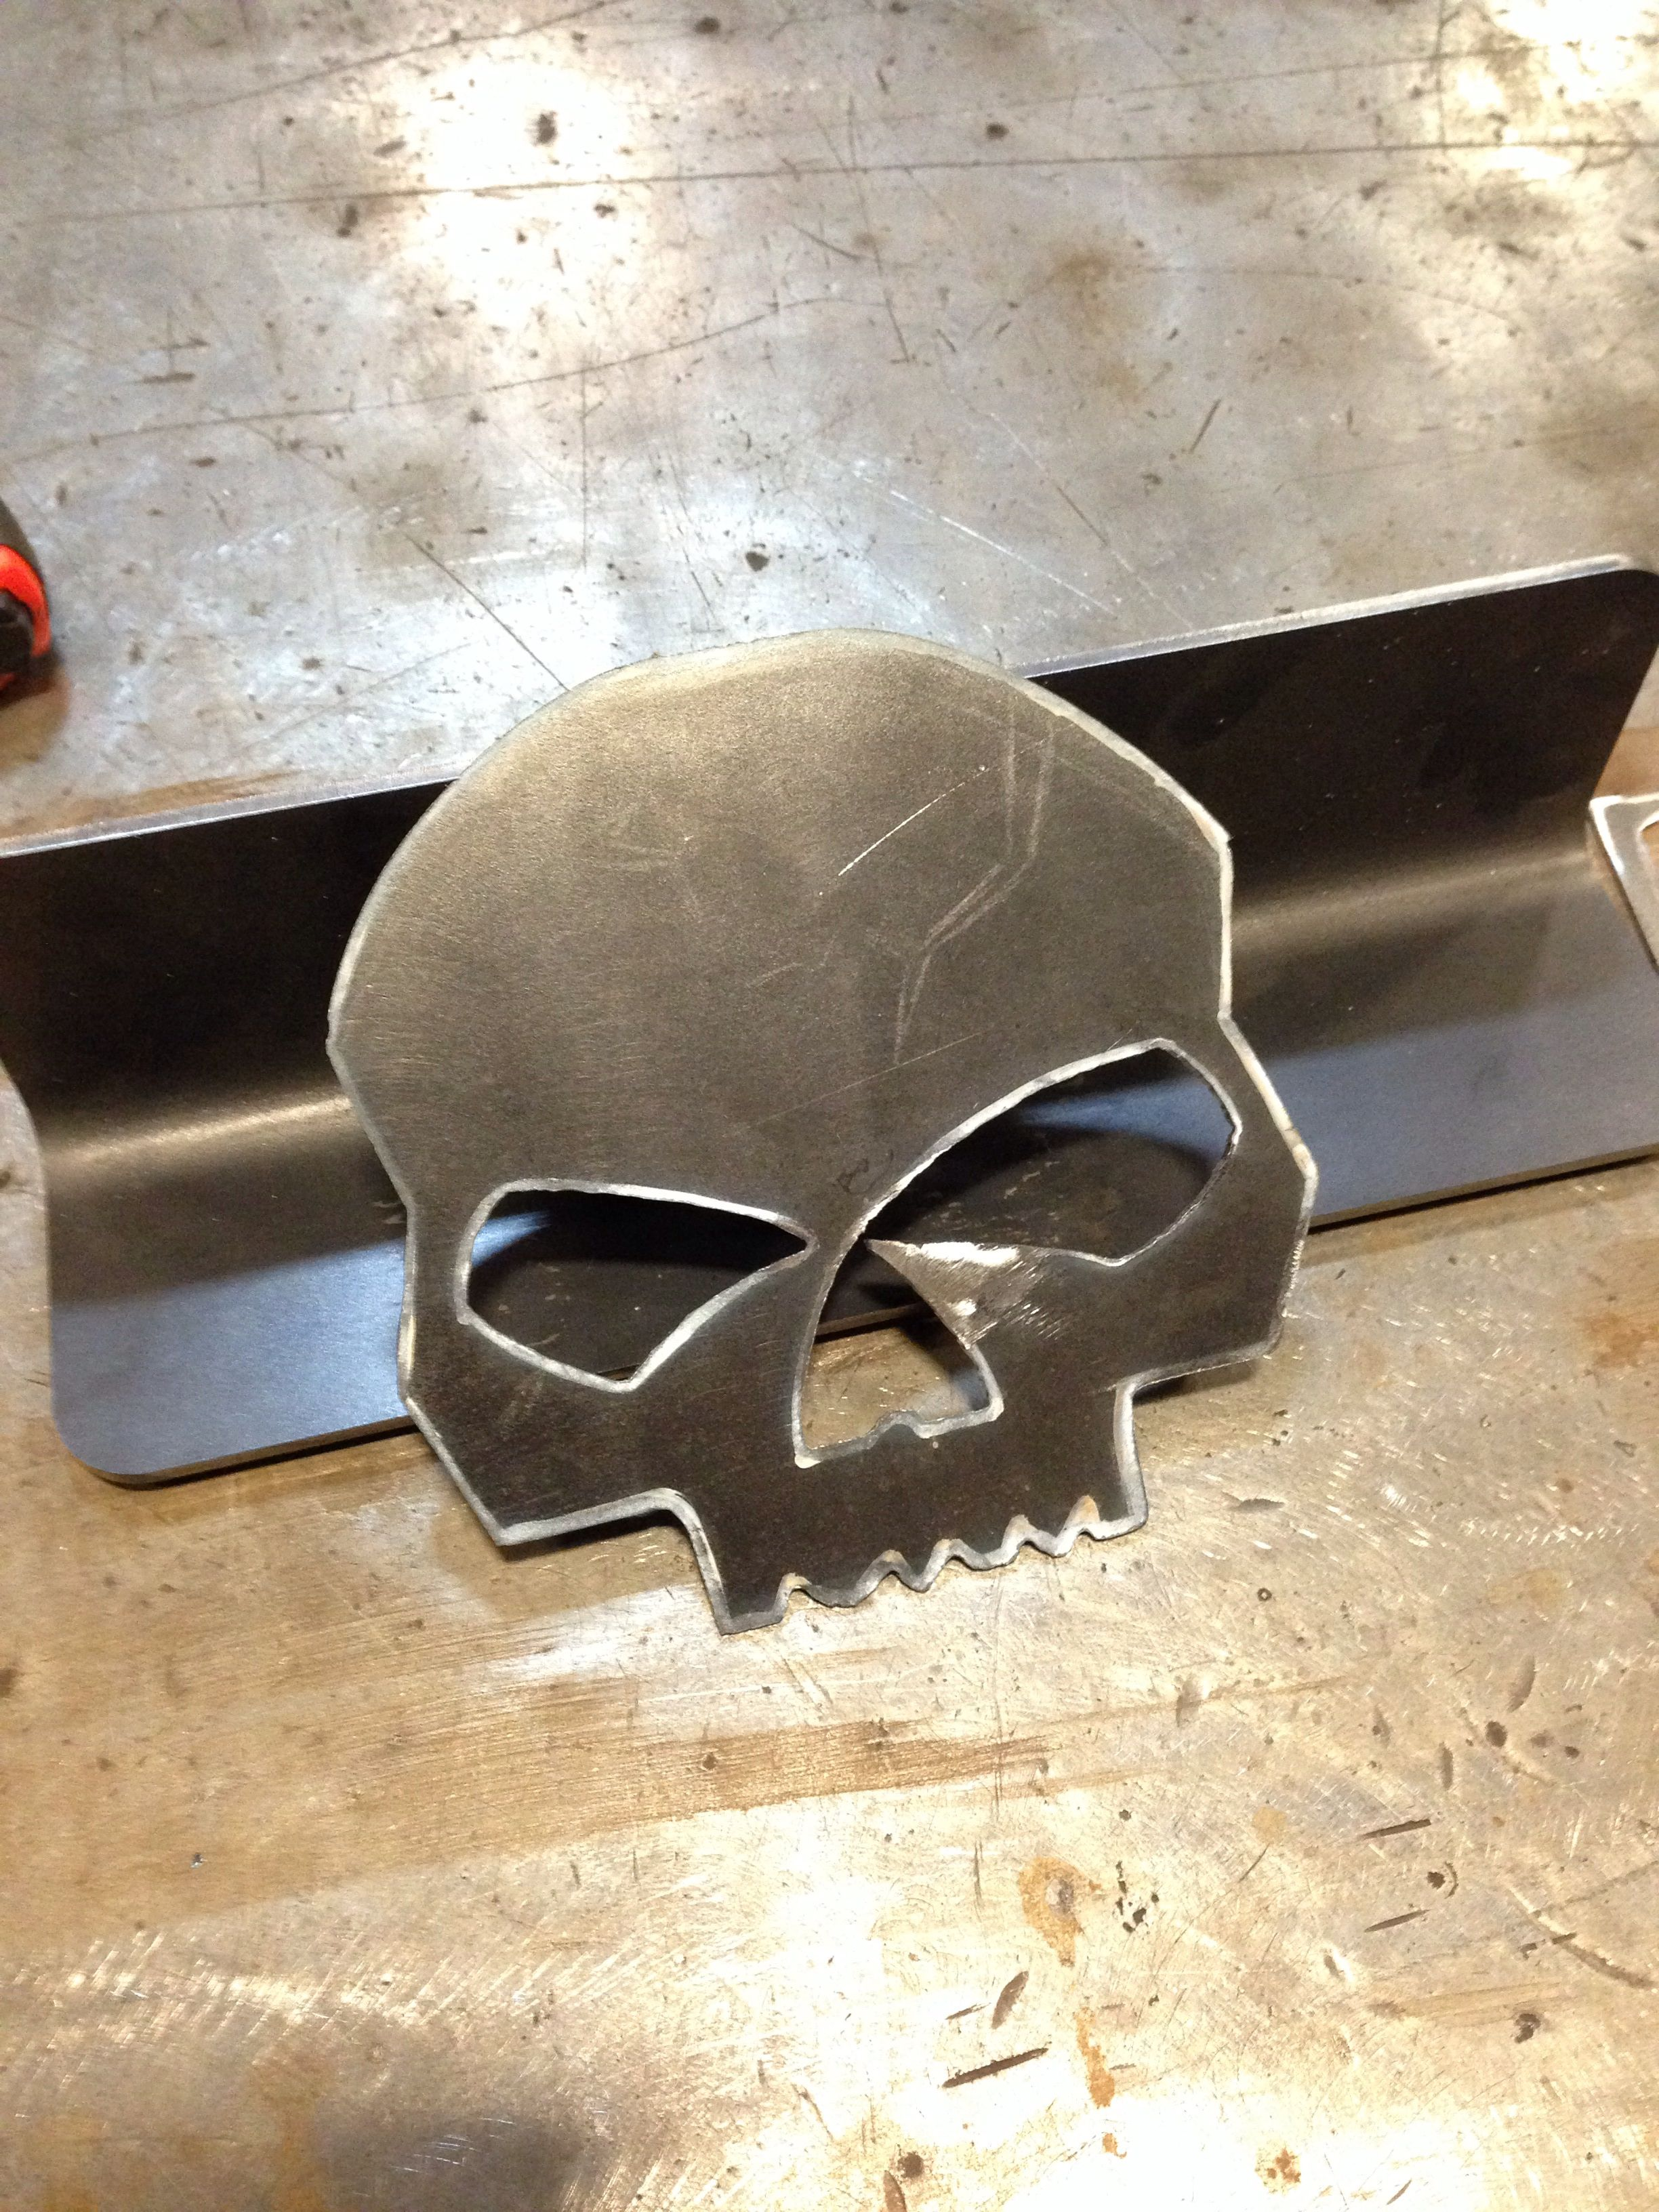 Harley Davidson Skull Cut Out With A Plasma Cutter My Projects Pinterest